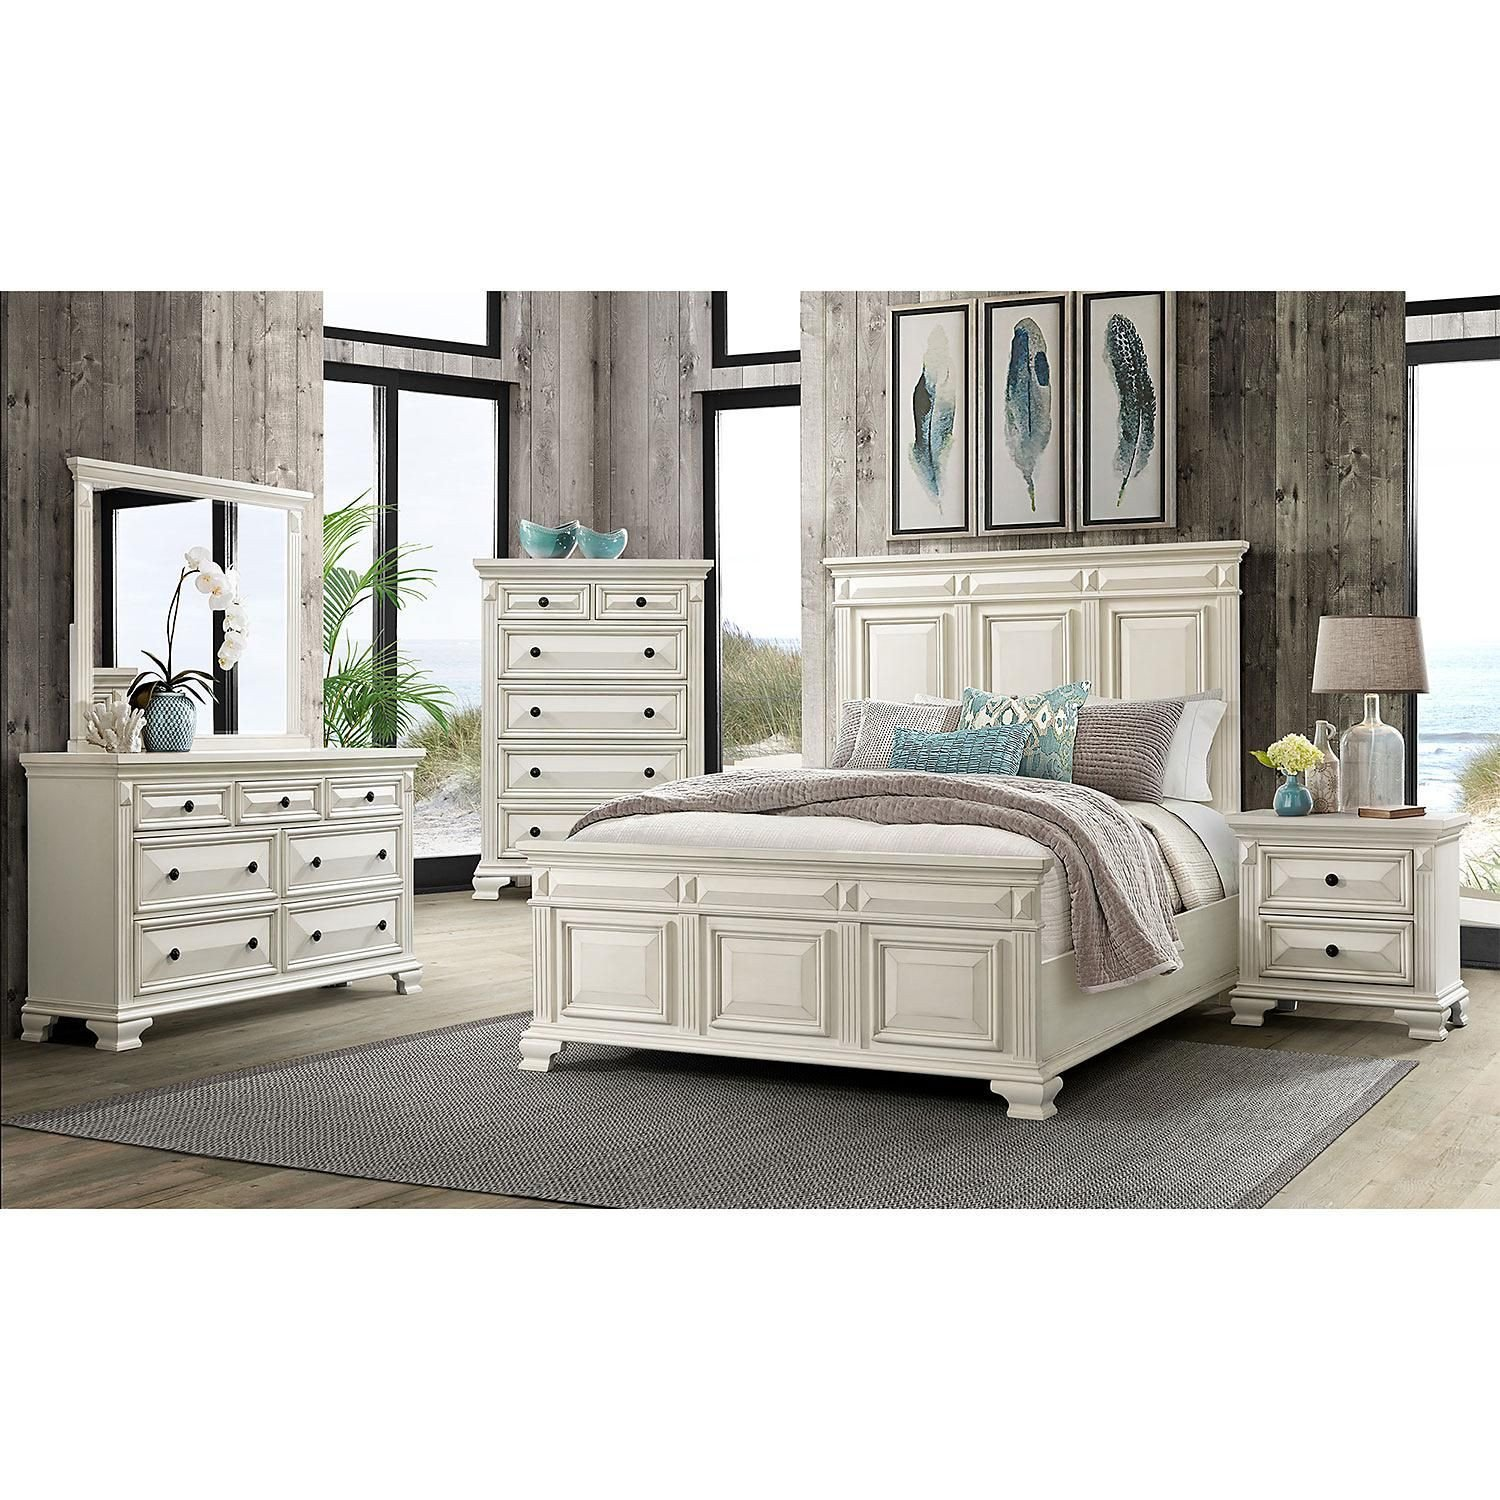 King Bedroom Set Cheap Elegant $1599 00 society Den Trent Panel 6 Piece King Bedroom Set